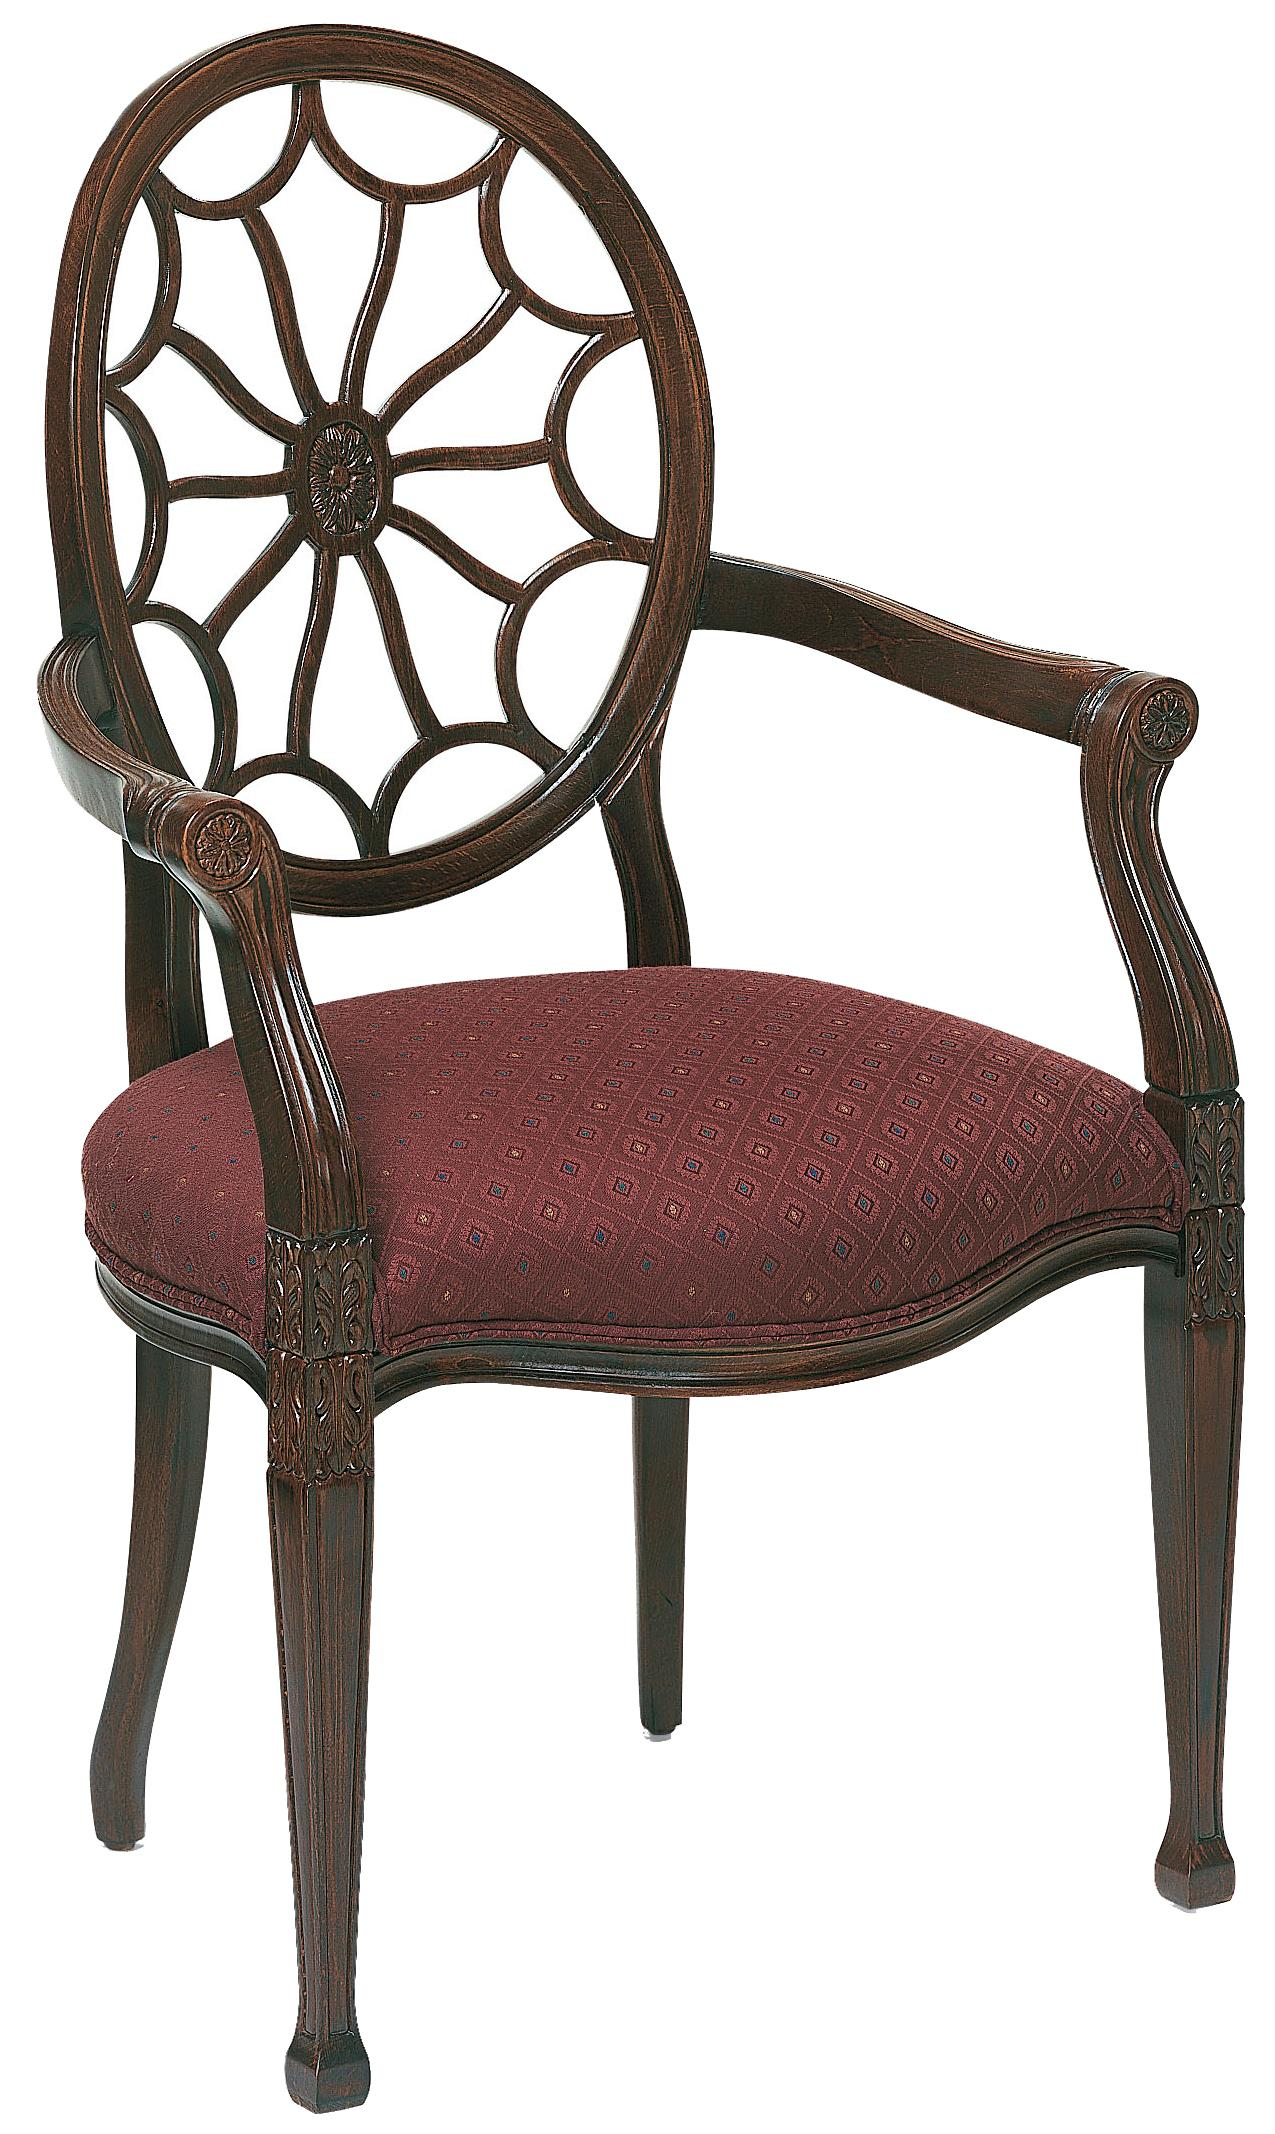 Fairfield Chairs Web Back Arm Chair - Item Number: 5282-04